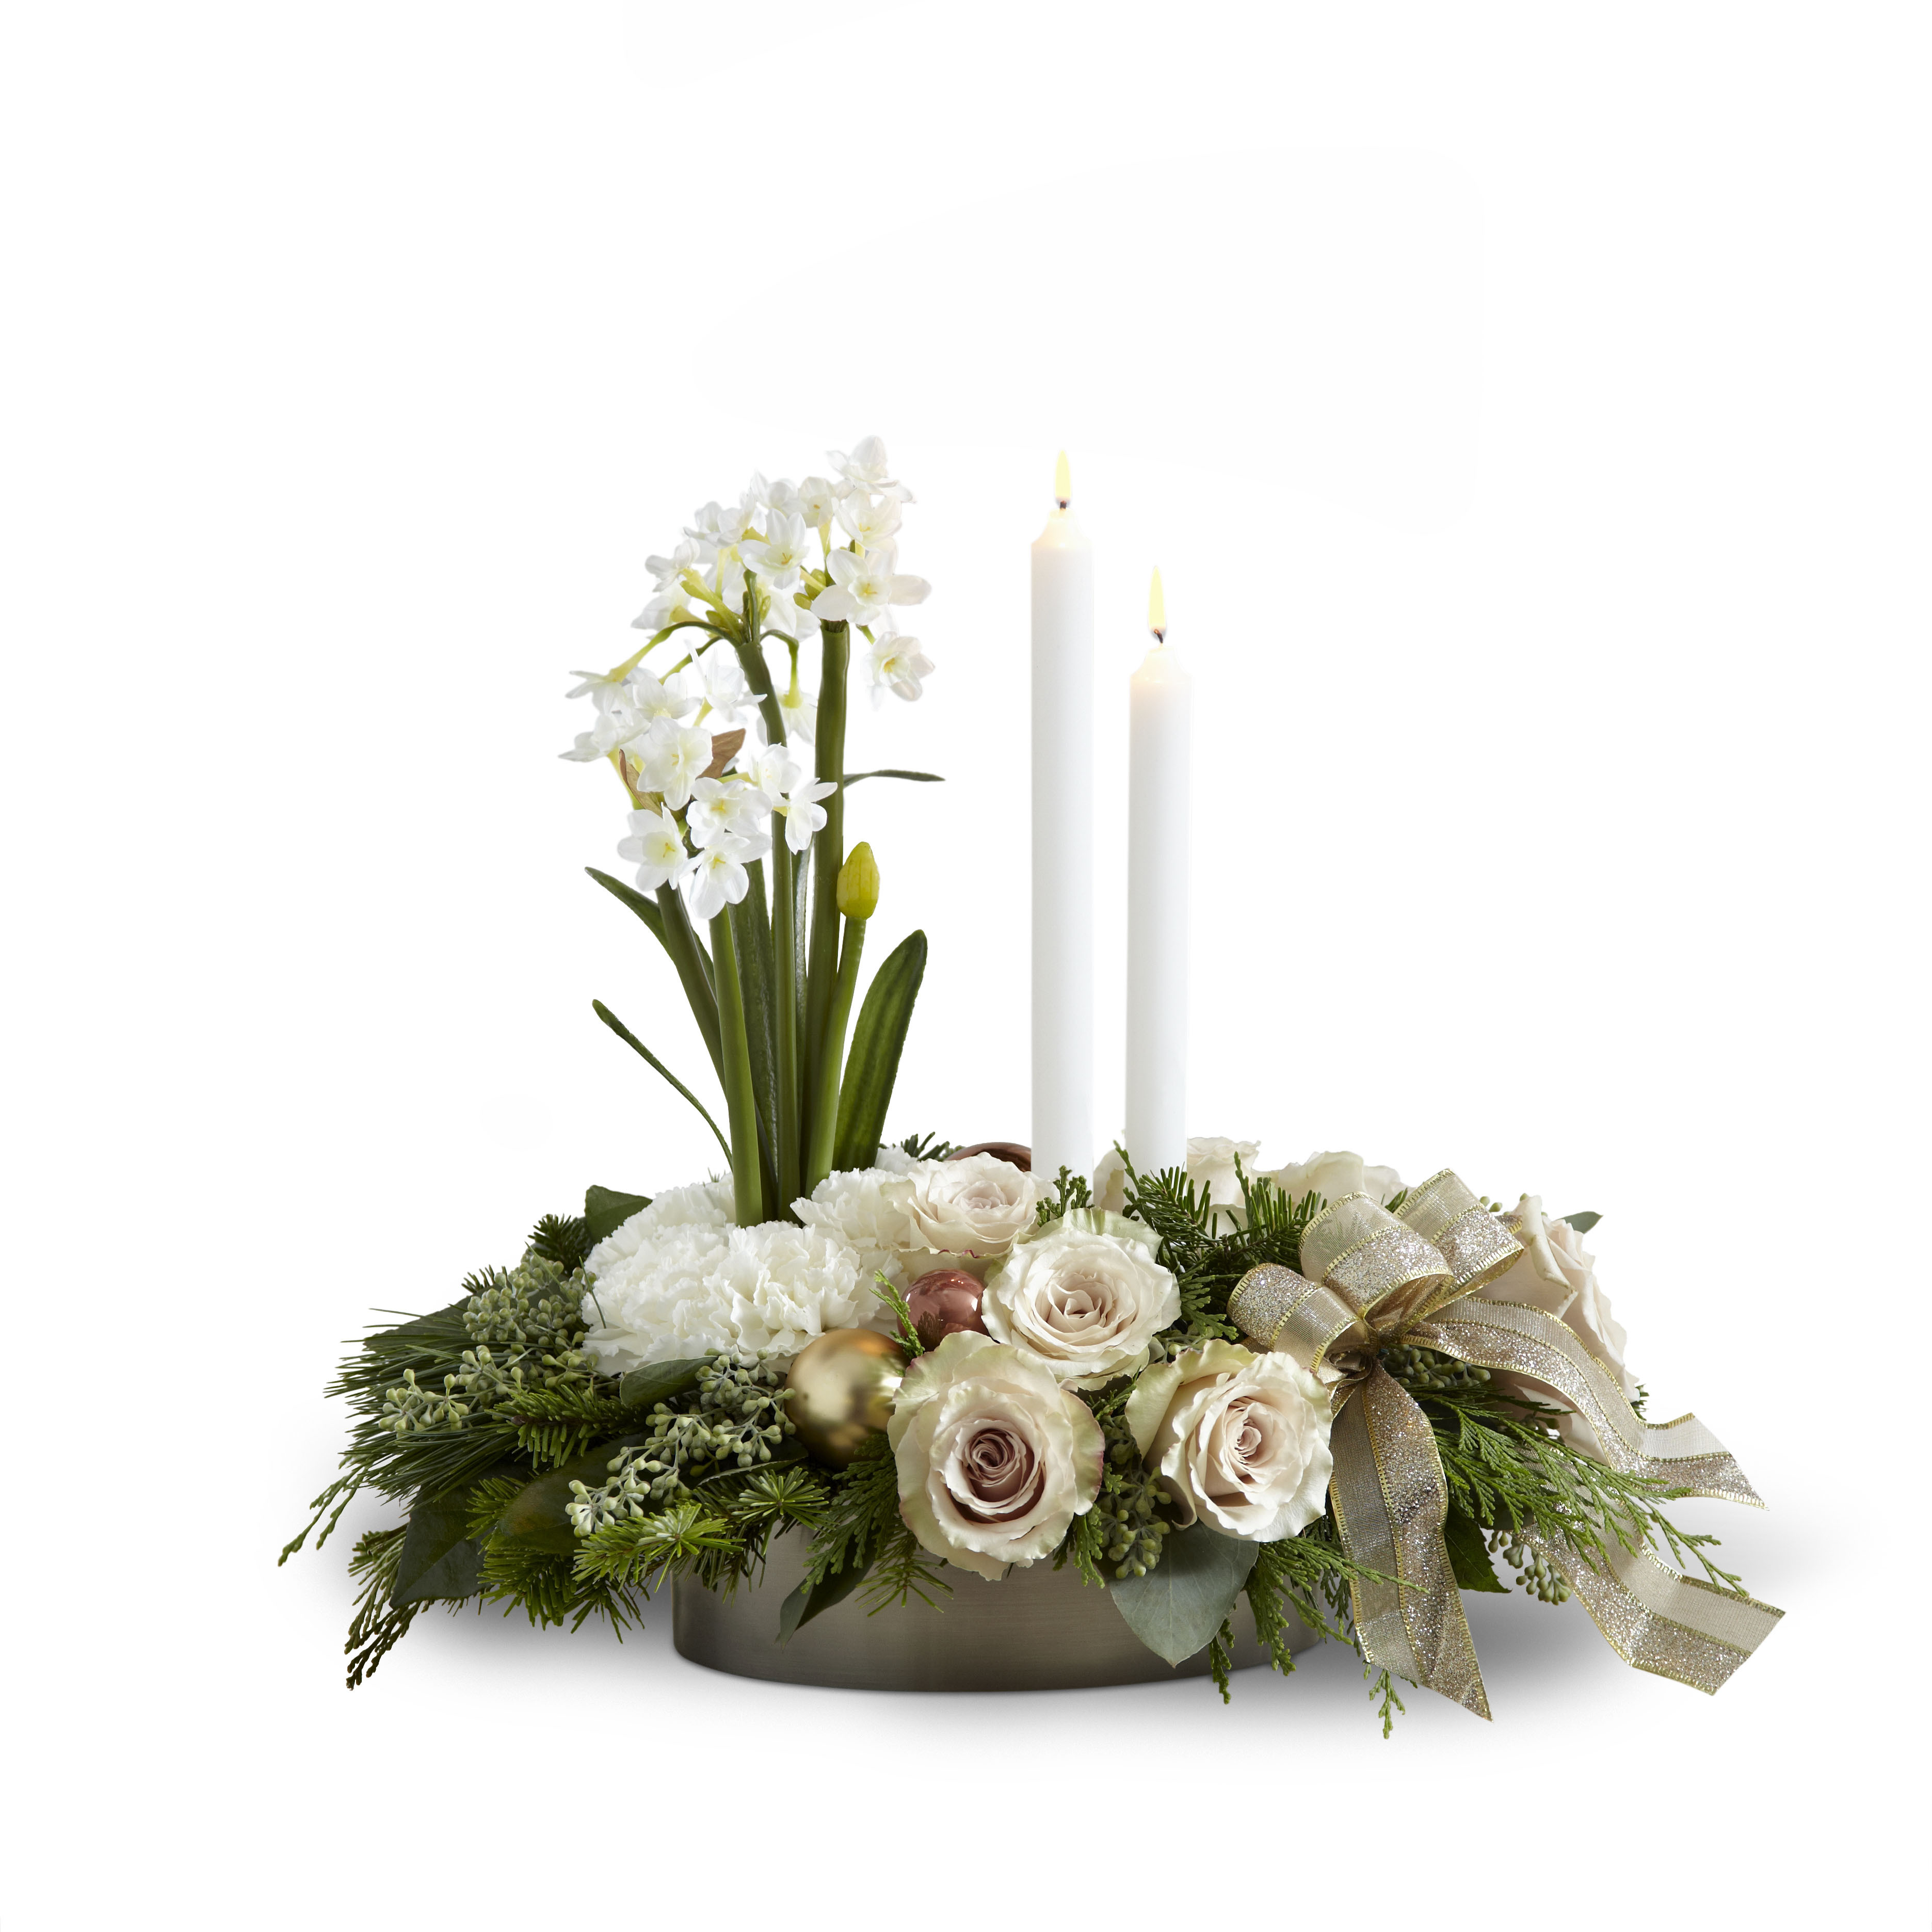 The FTD Glowing Elegance Centerpiece